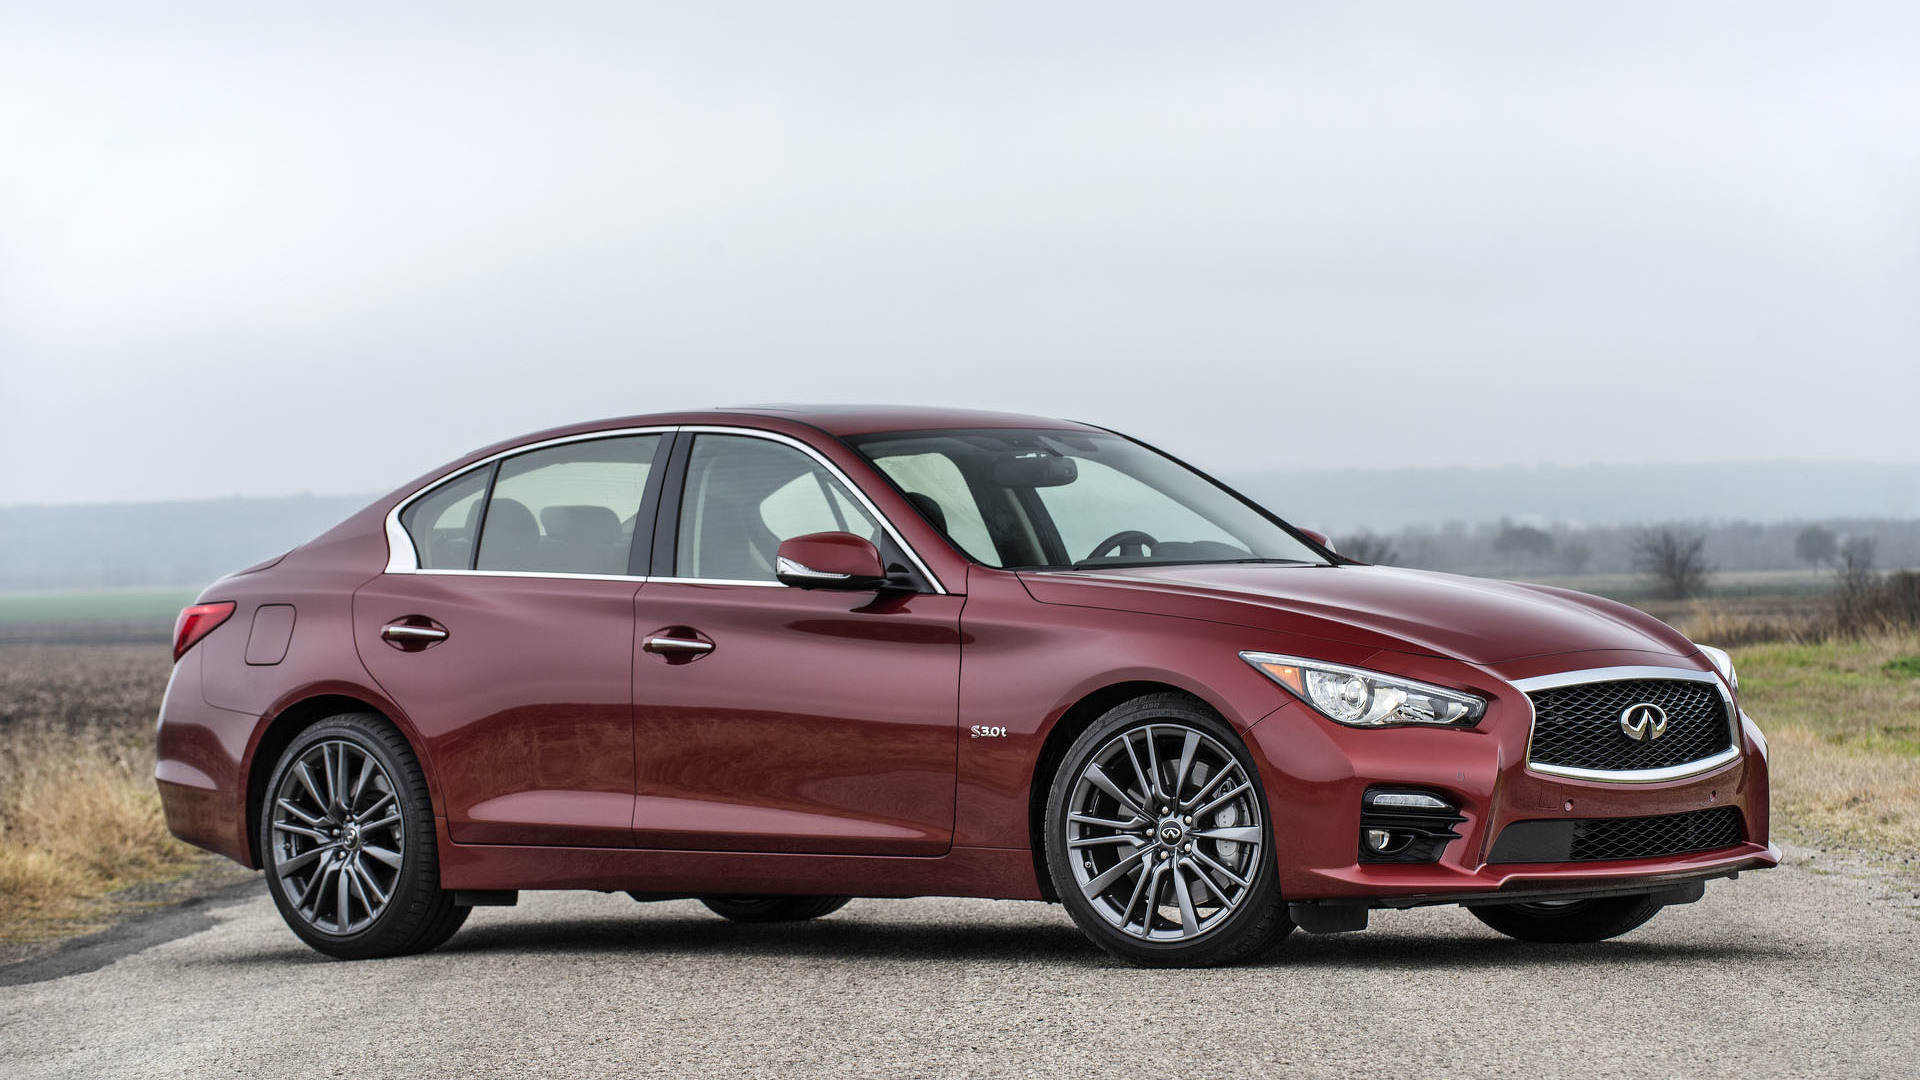 2016 infiniti q50 red sport 400 priced from 47 950. Black Bedroom Furniture Sets. Home Design Ideas